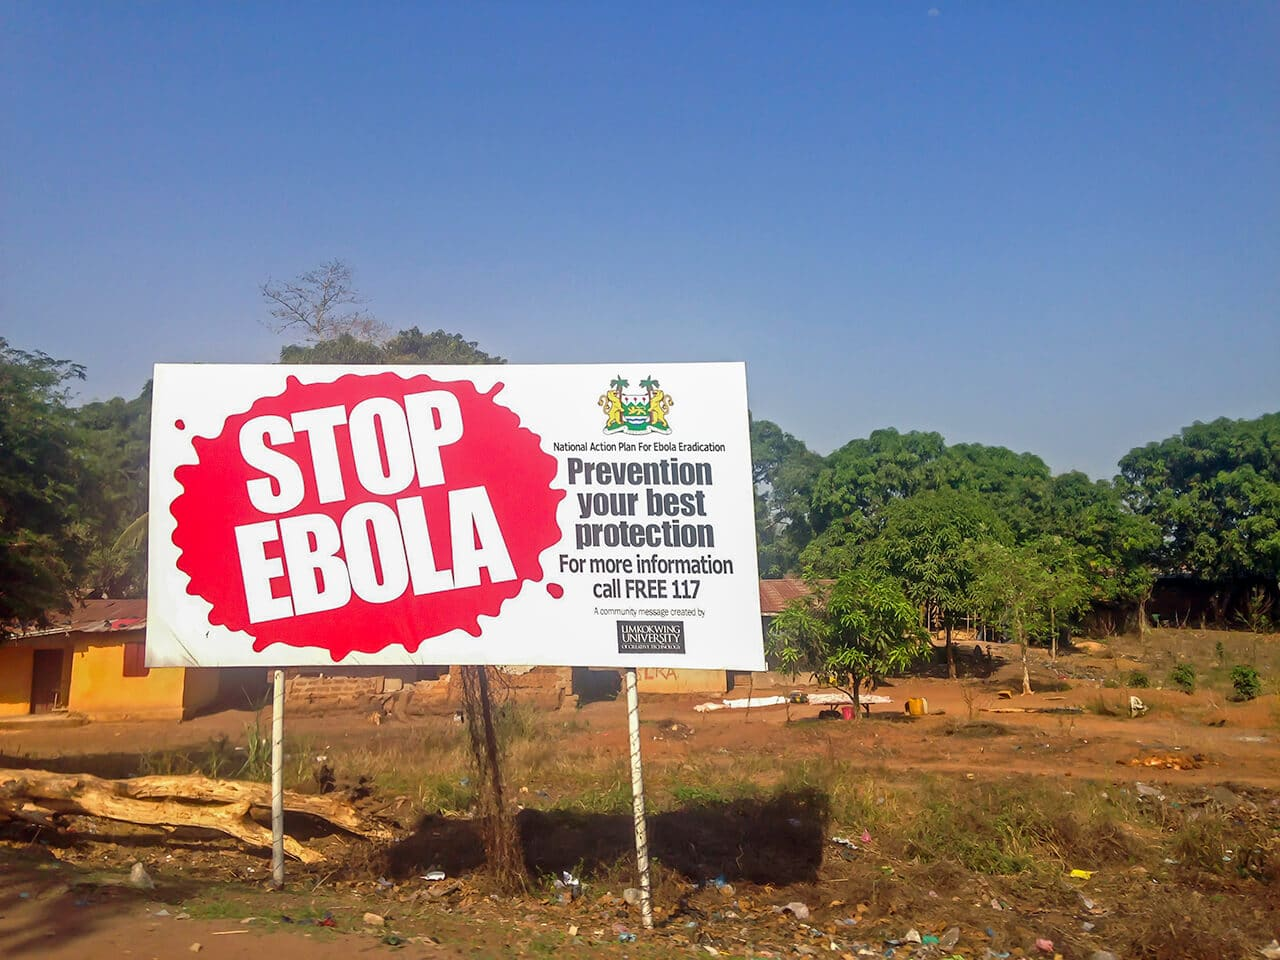 Travel is fatal to prejudice: Stop ebola sign in Sierra Leone